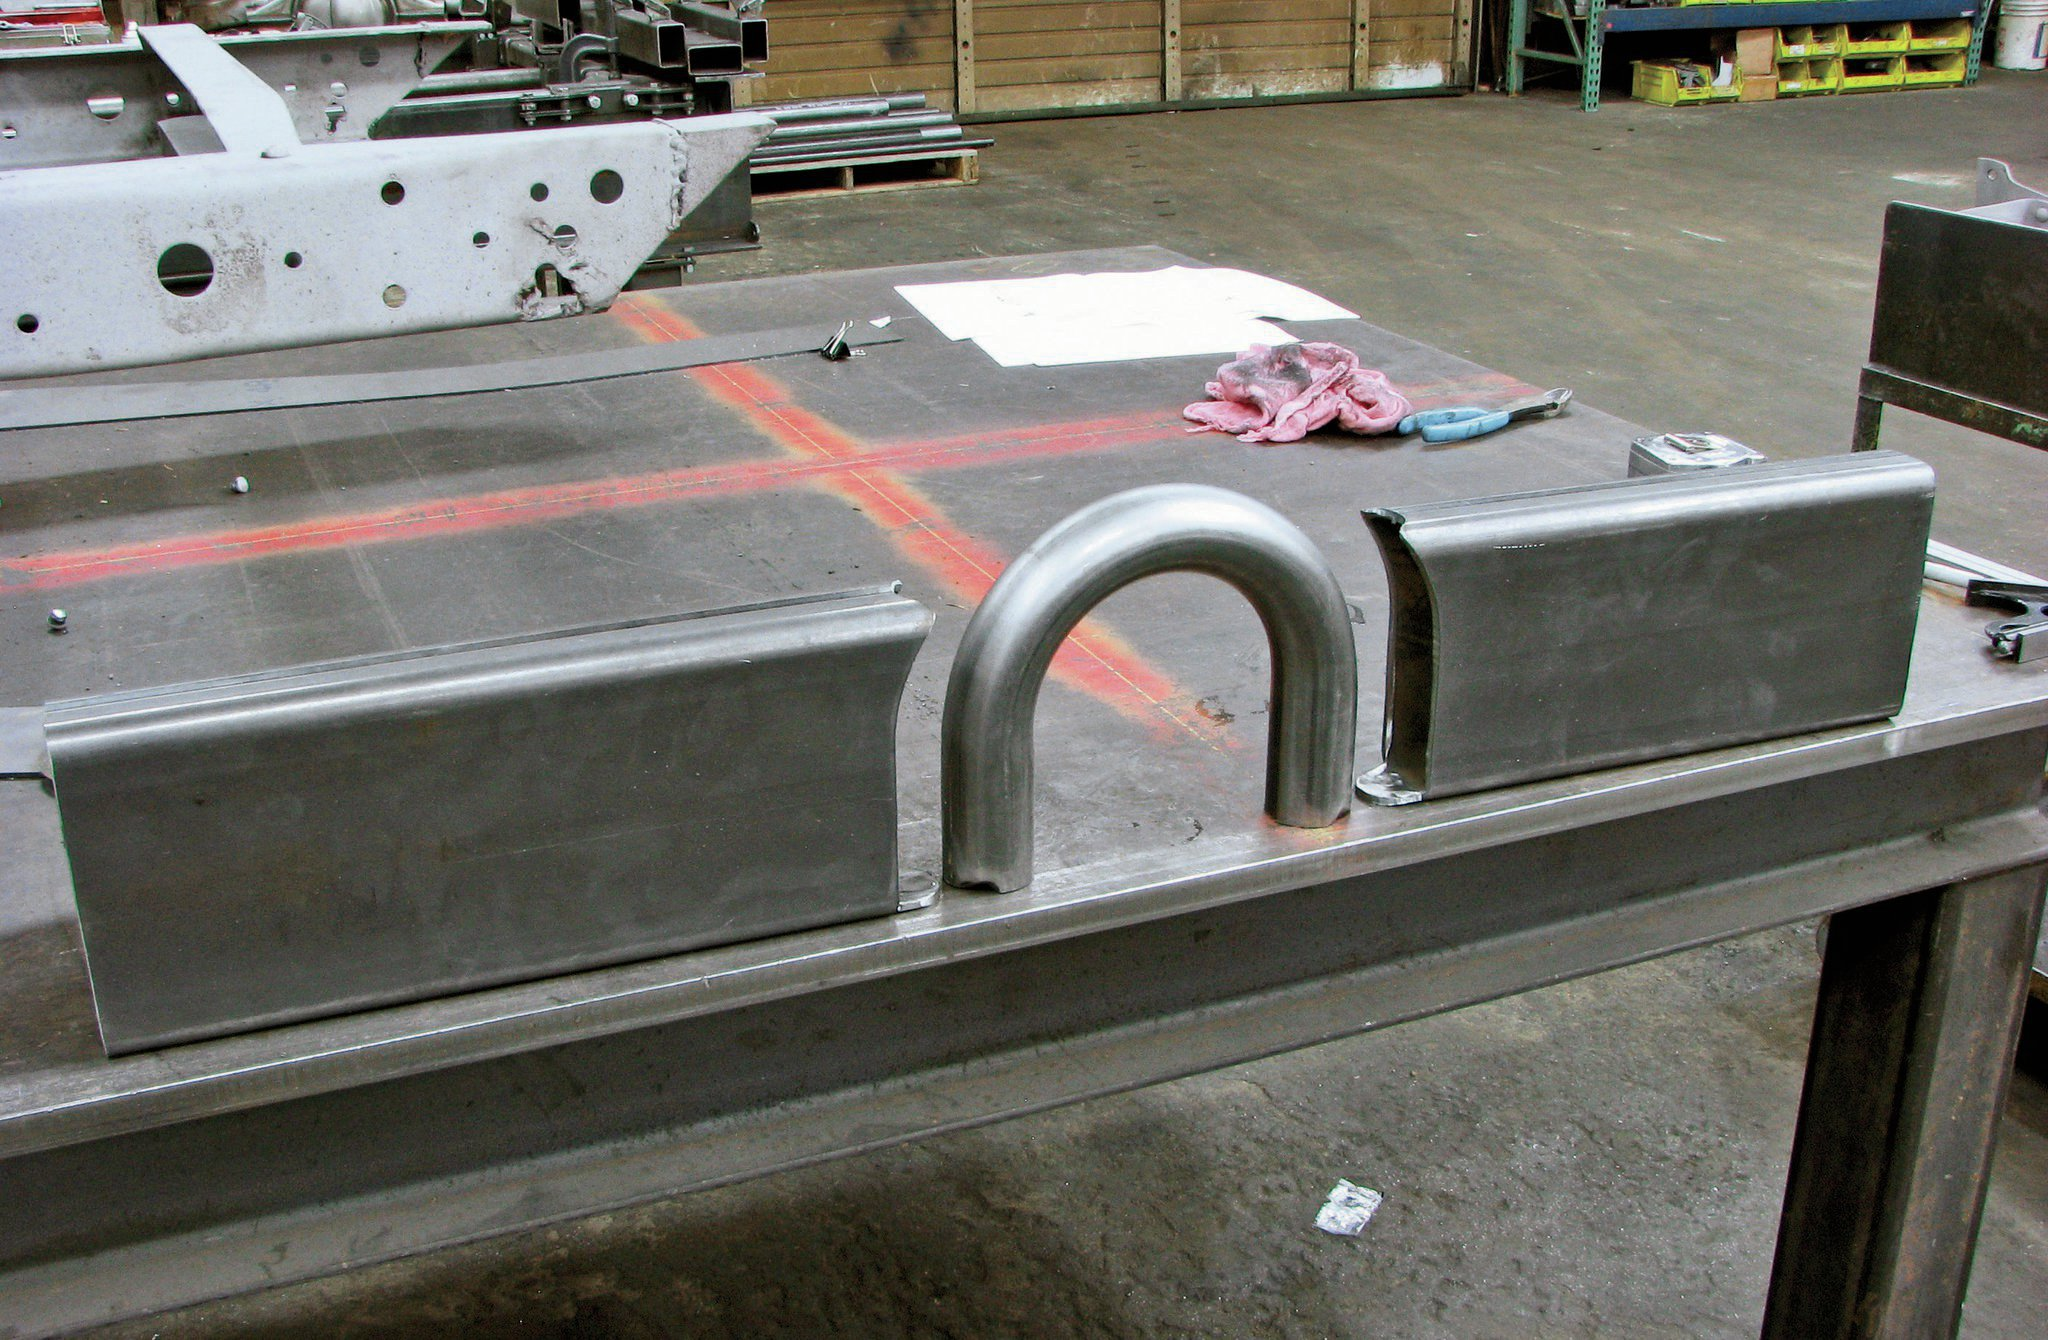 3. These are the components of the rear crossmember that will mount the four-bars. The hoop is for driveshaft clearance.